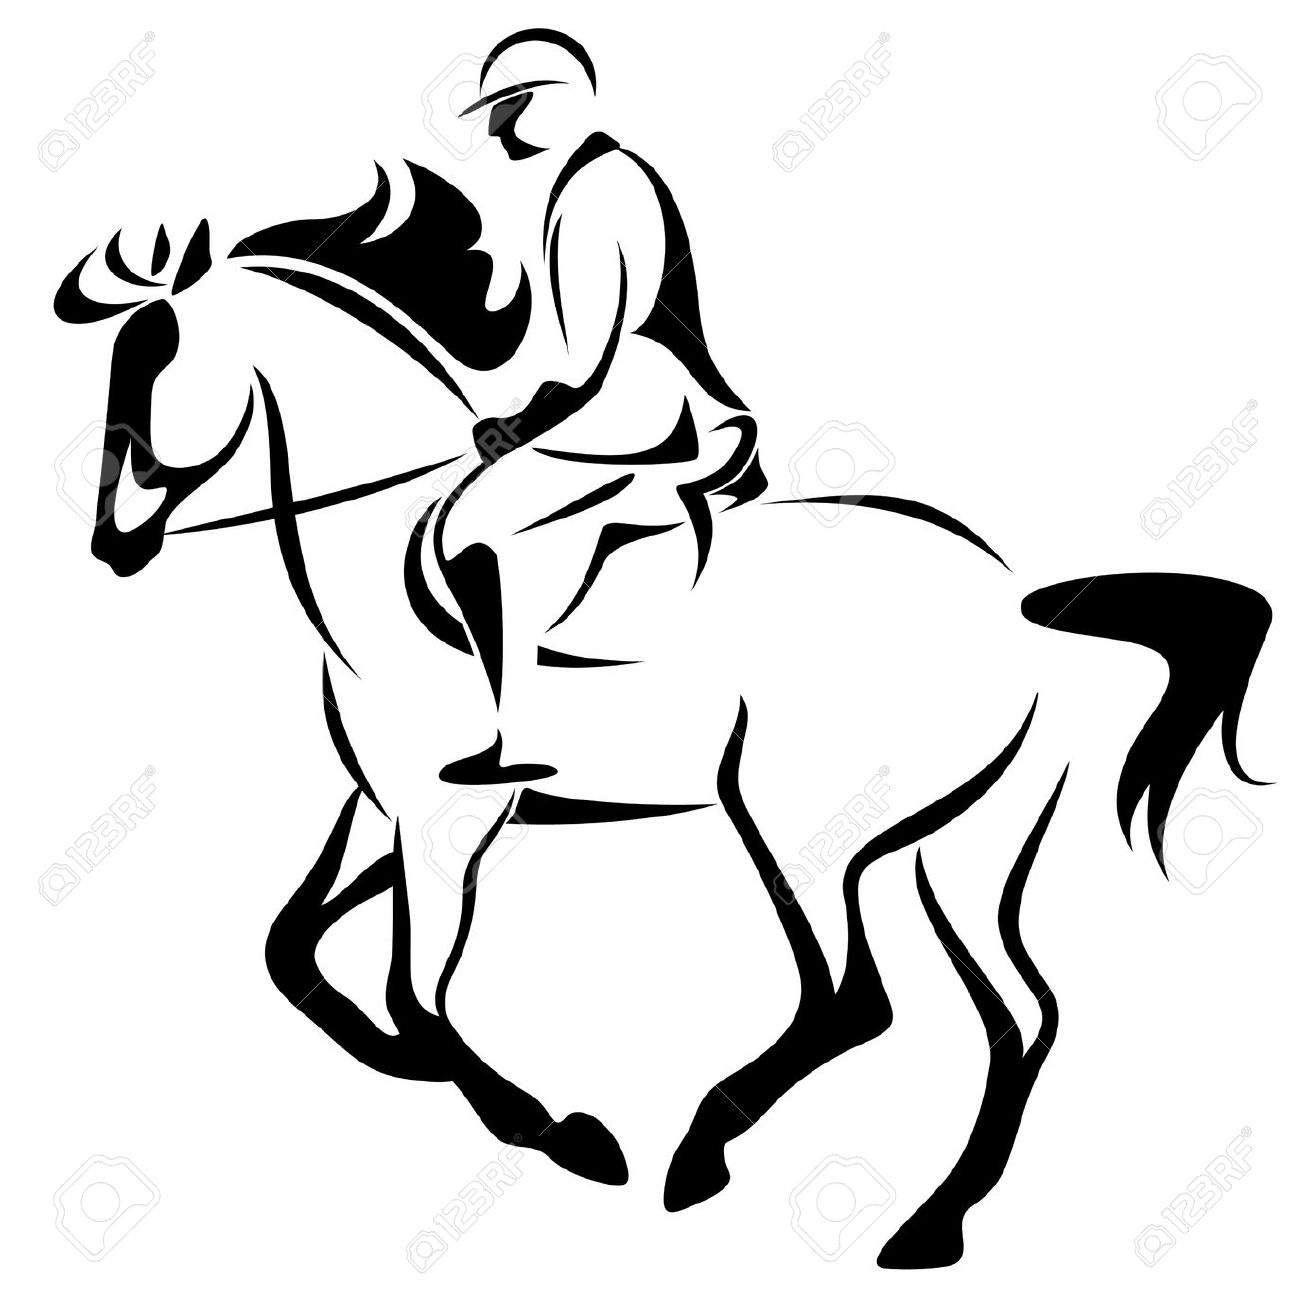 silhouette horse riding at getdrawings com free for personal use rh getdrawings com horse racing clip art free horse riding clipart